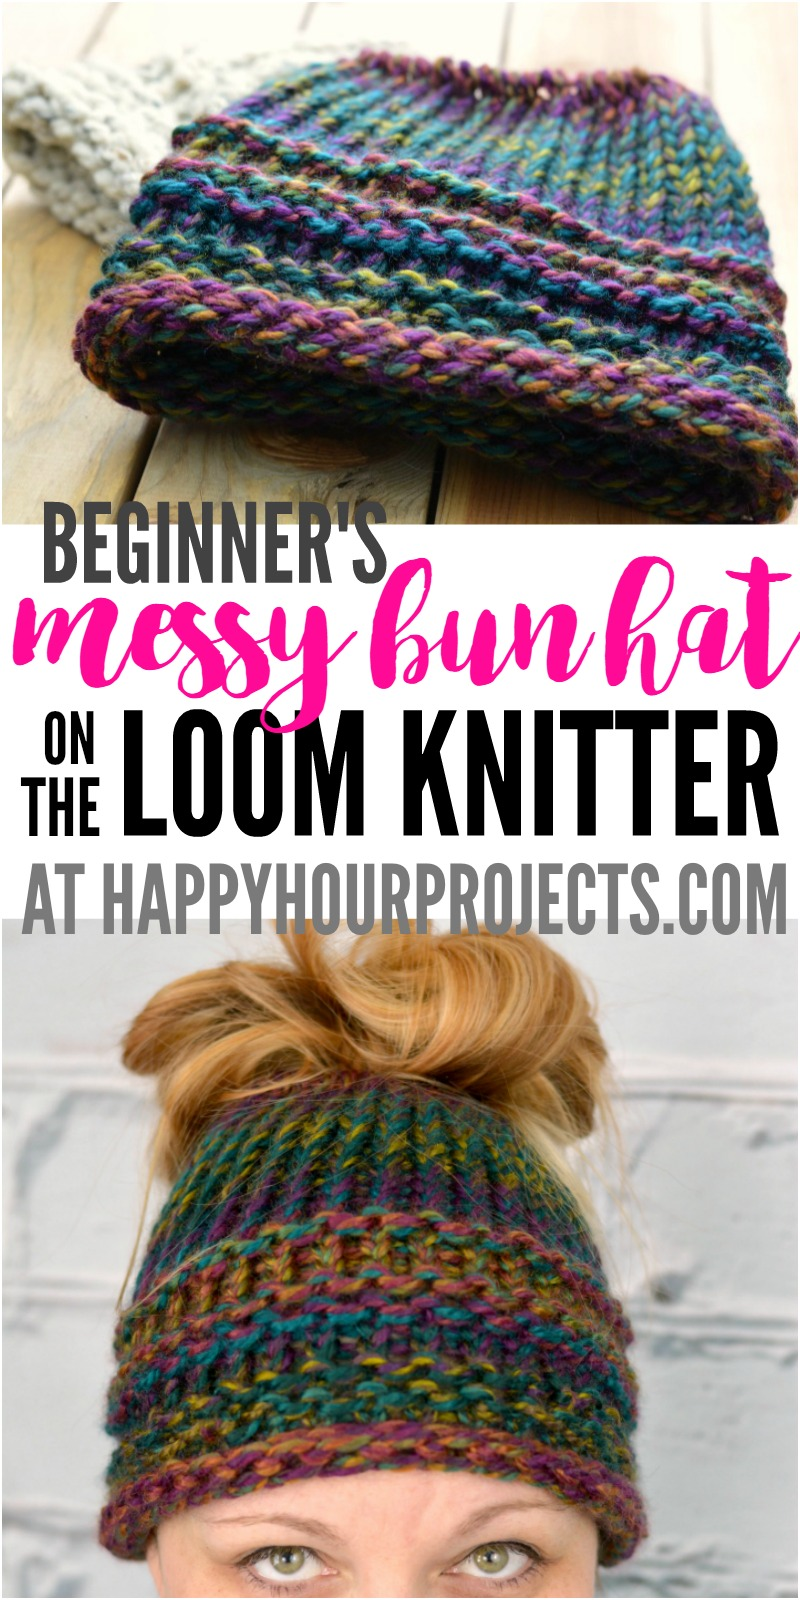 loom knitting patterns beginners messy bun hat using the loom knitter at happyhourprojects.com    2-hour alfpjcd